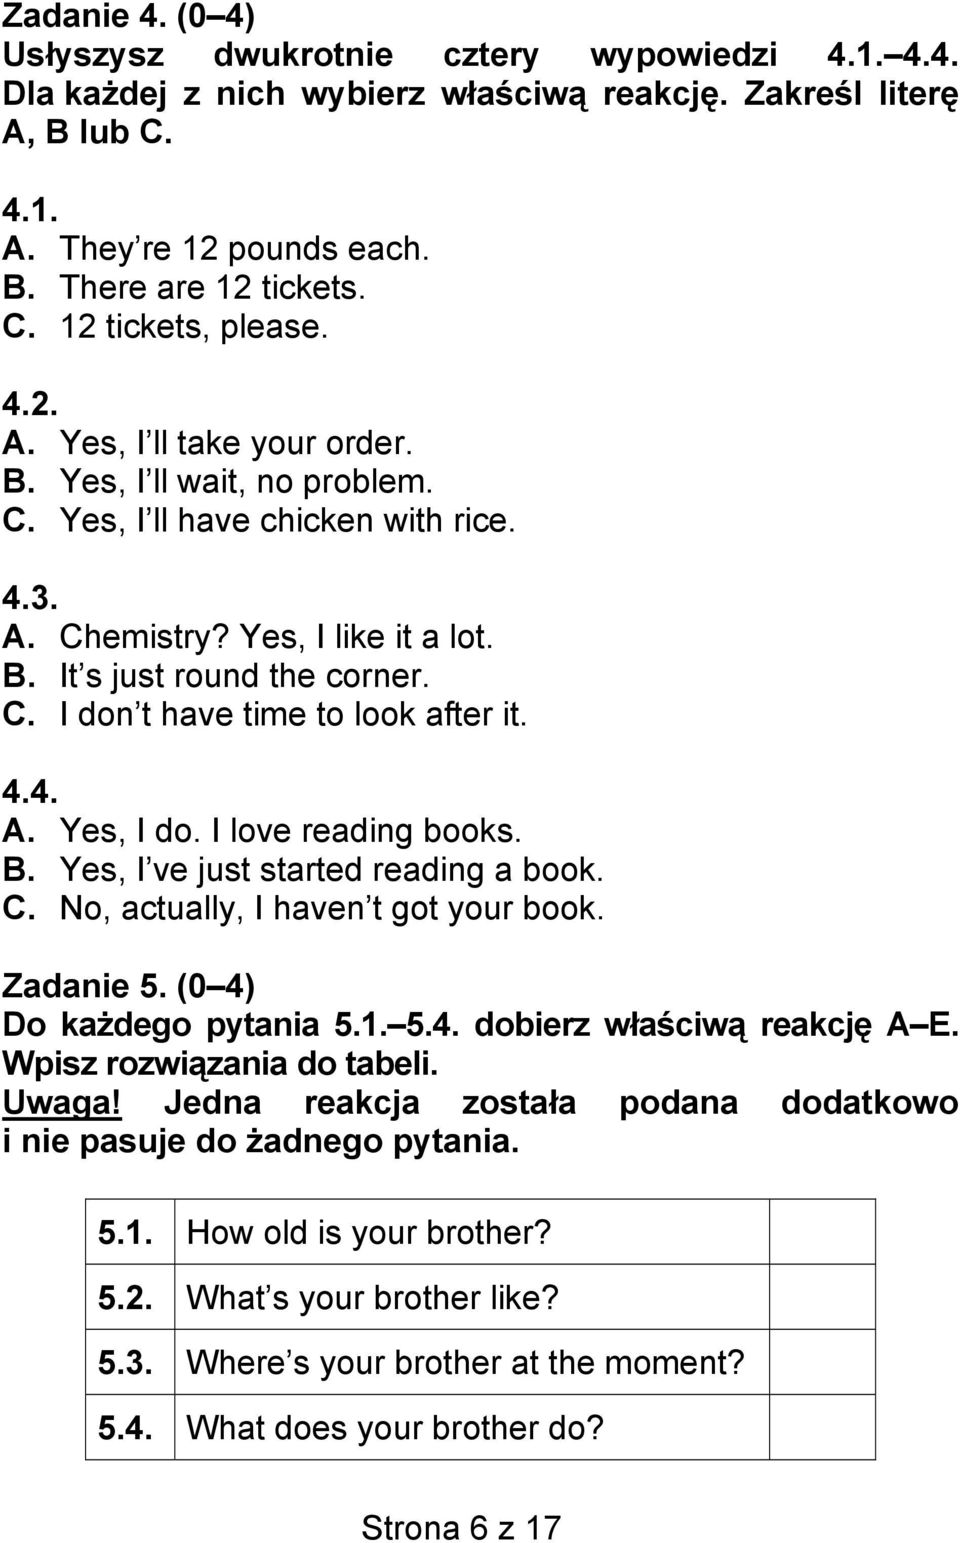 4.4. A. Yes, I do. I love reading books. B. Yes, I ve just started reading a book. C. No, actually, I haven t got your book. Zadanie 5. (0 4) Do każdego pytania 5.1. 5.4. dobierz właściwą reakcję A E.